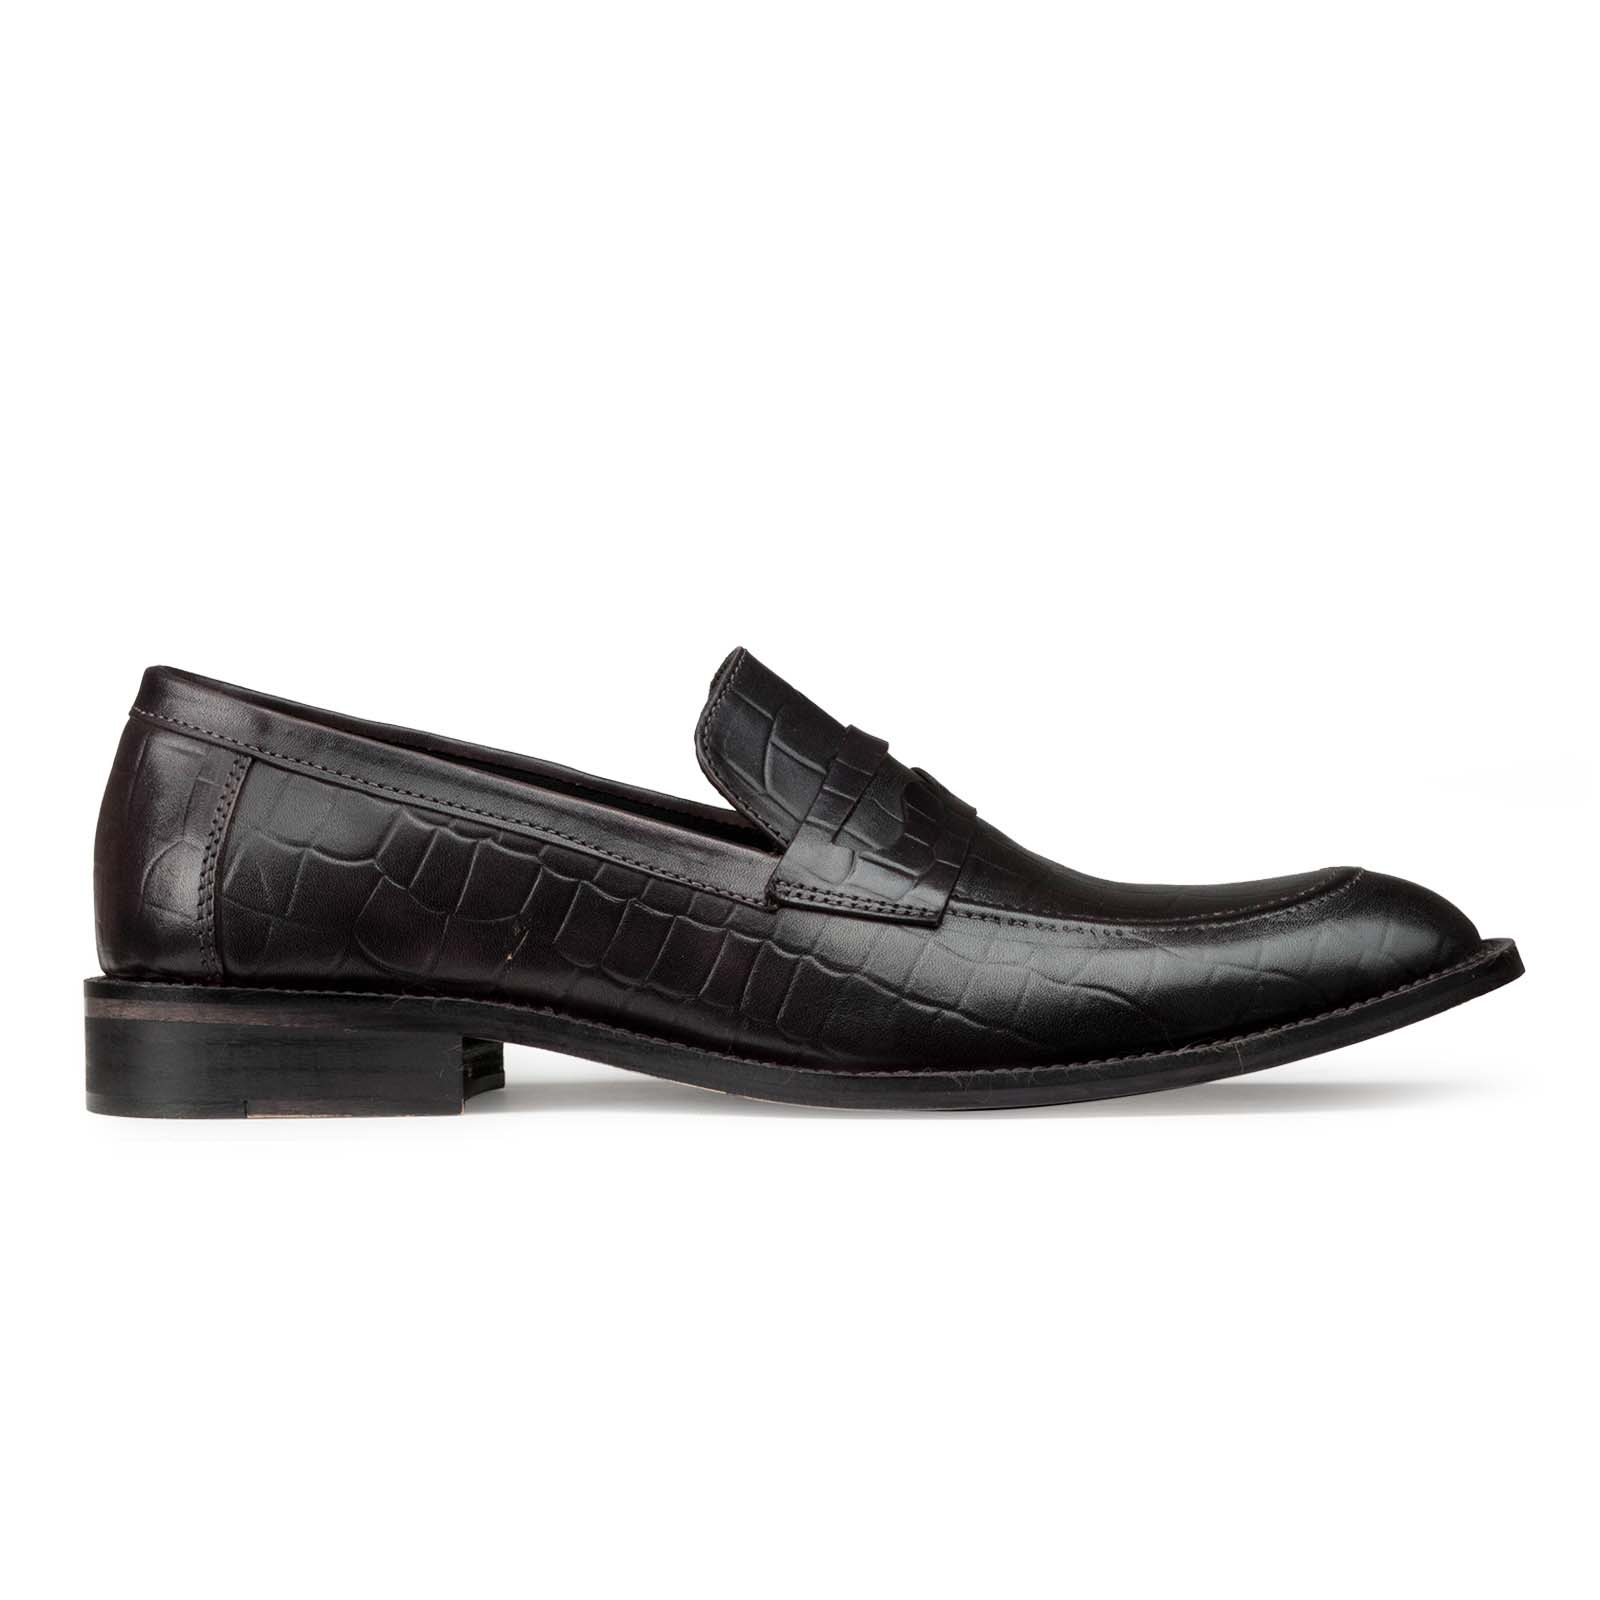 Black Croc-Embossed Slip-on